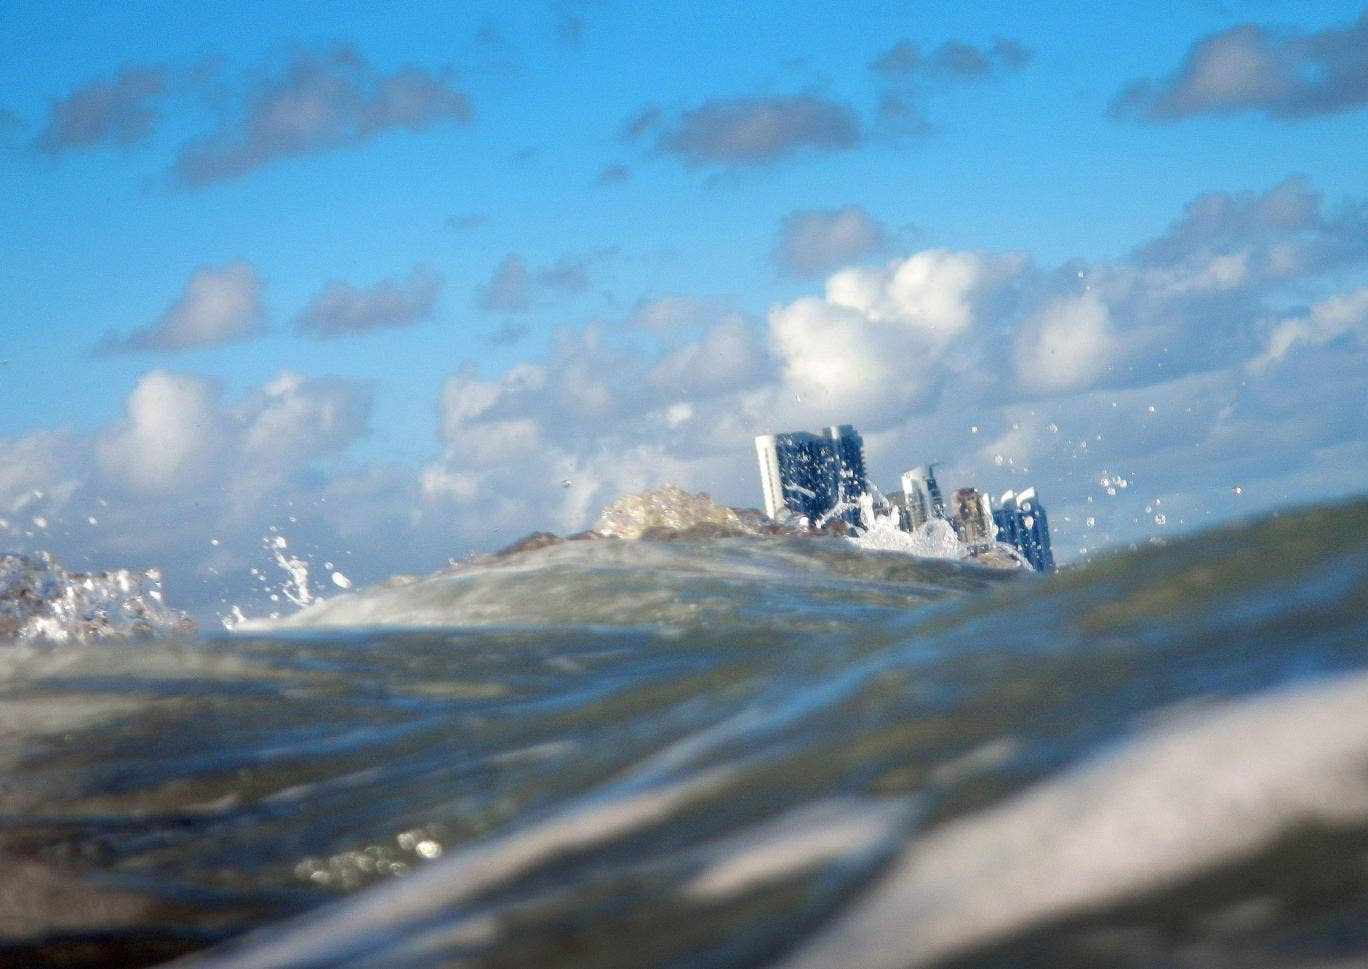 In the future Florida could be one of the most susceptible places when it comes to rising water levels